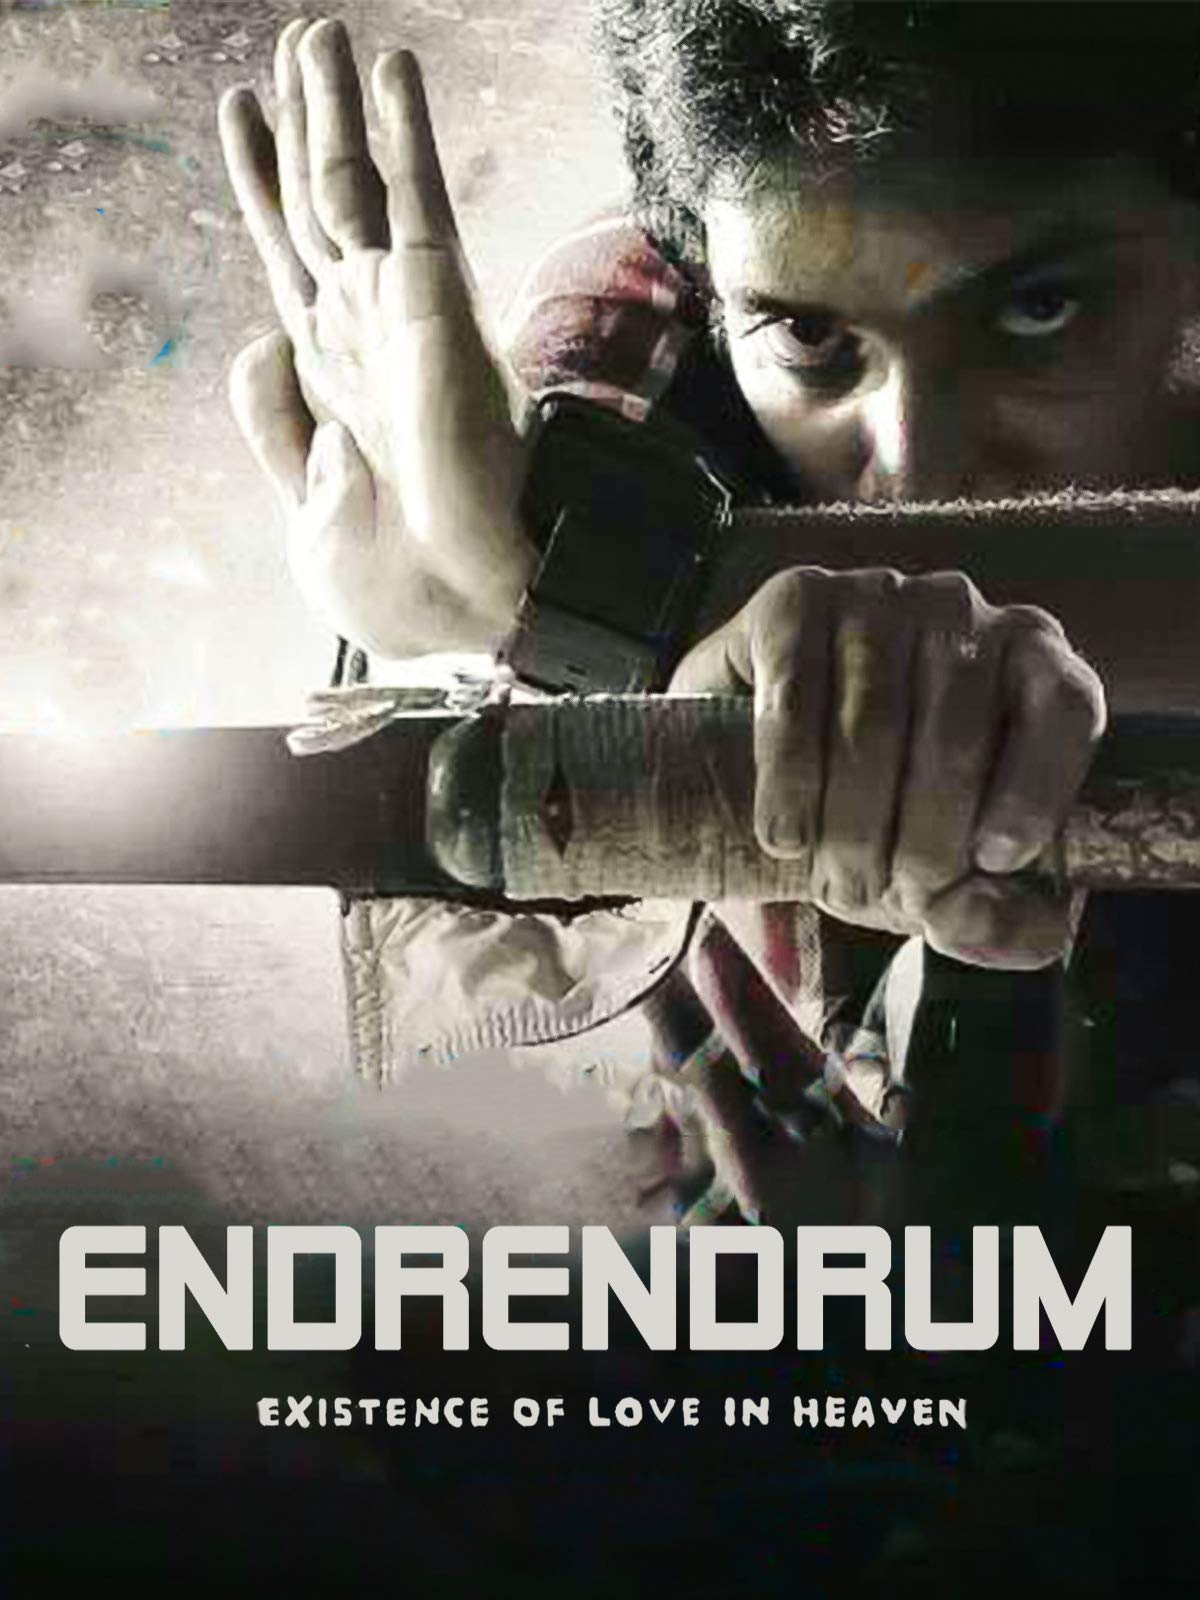 Endrendrum